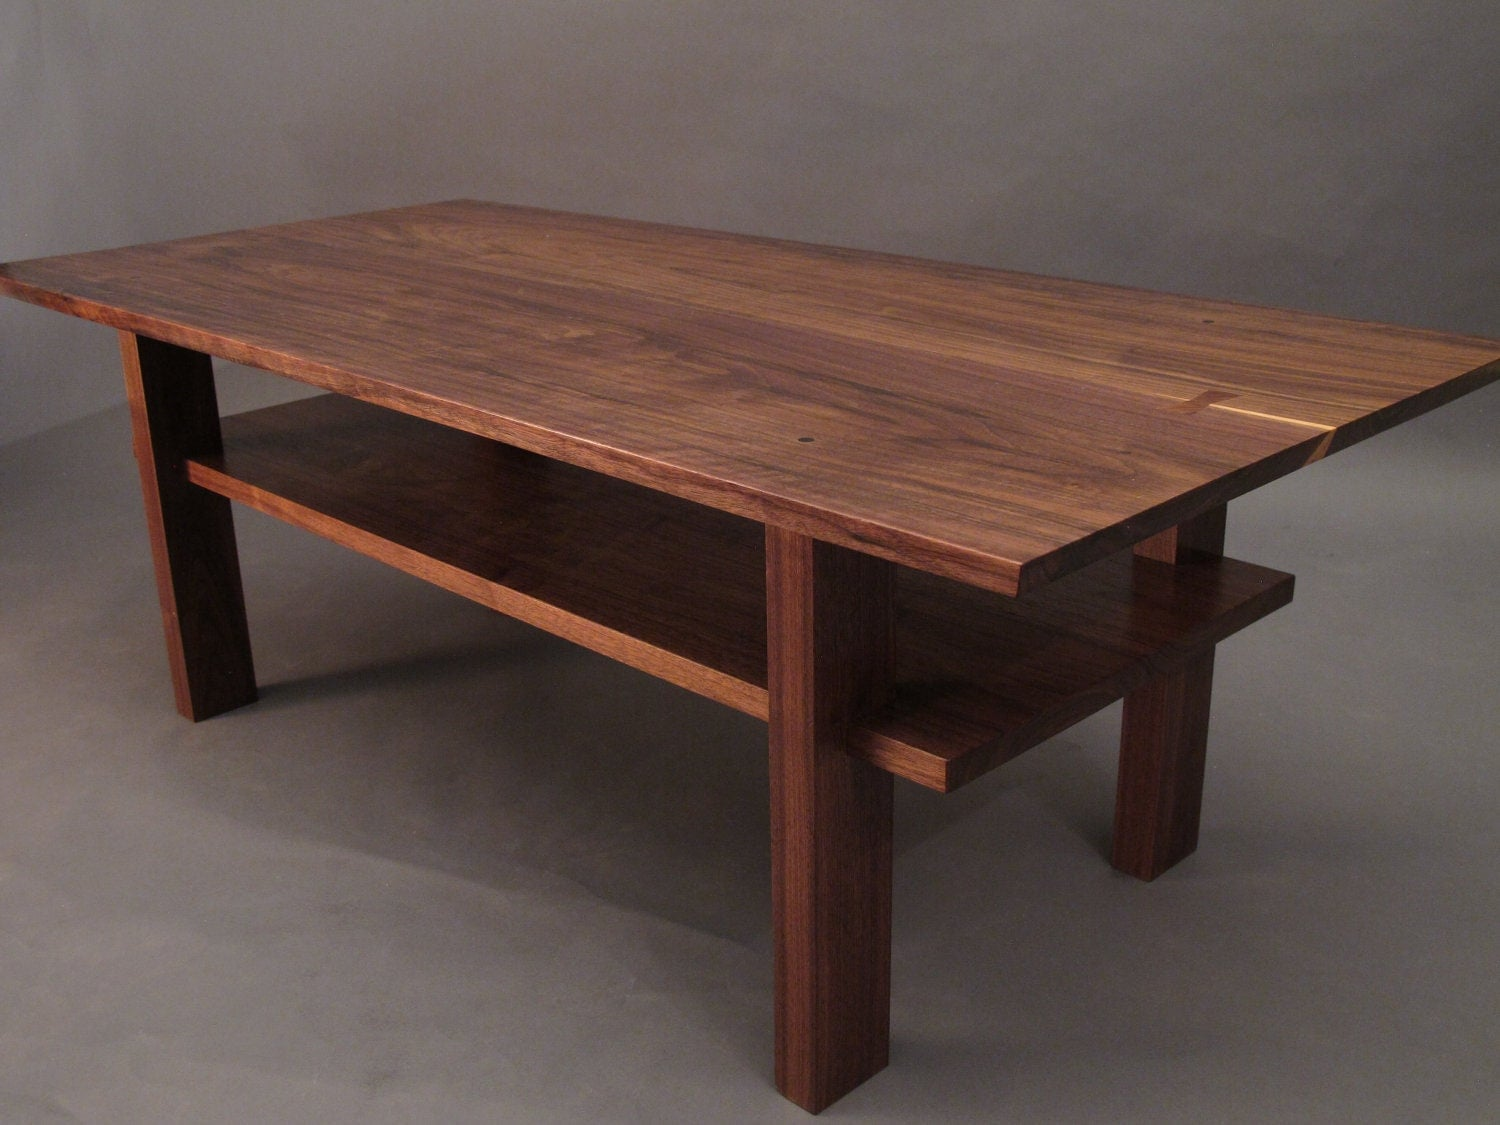 Walnut coffee table small wood tables for living room narrow for Coffee table